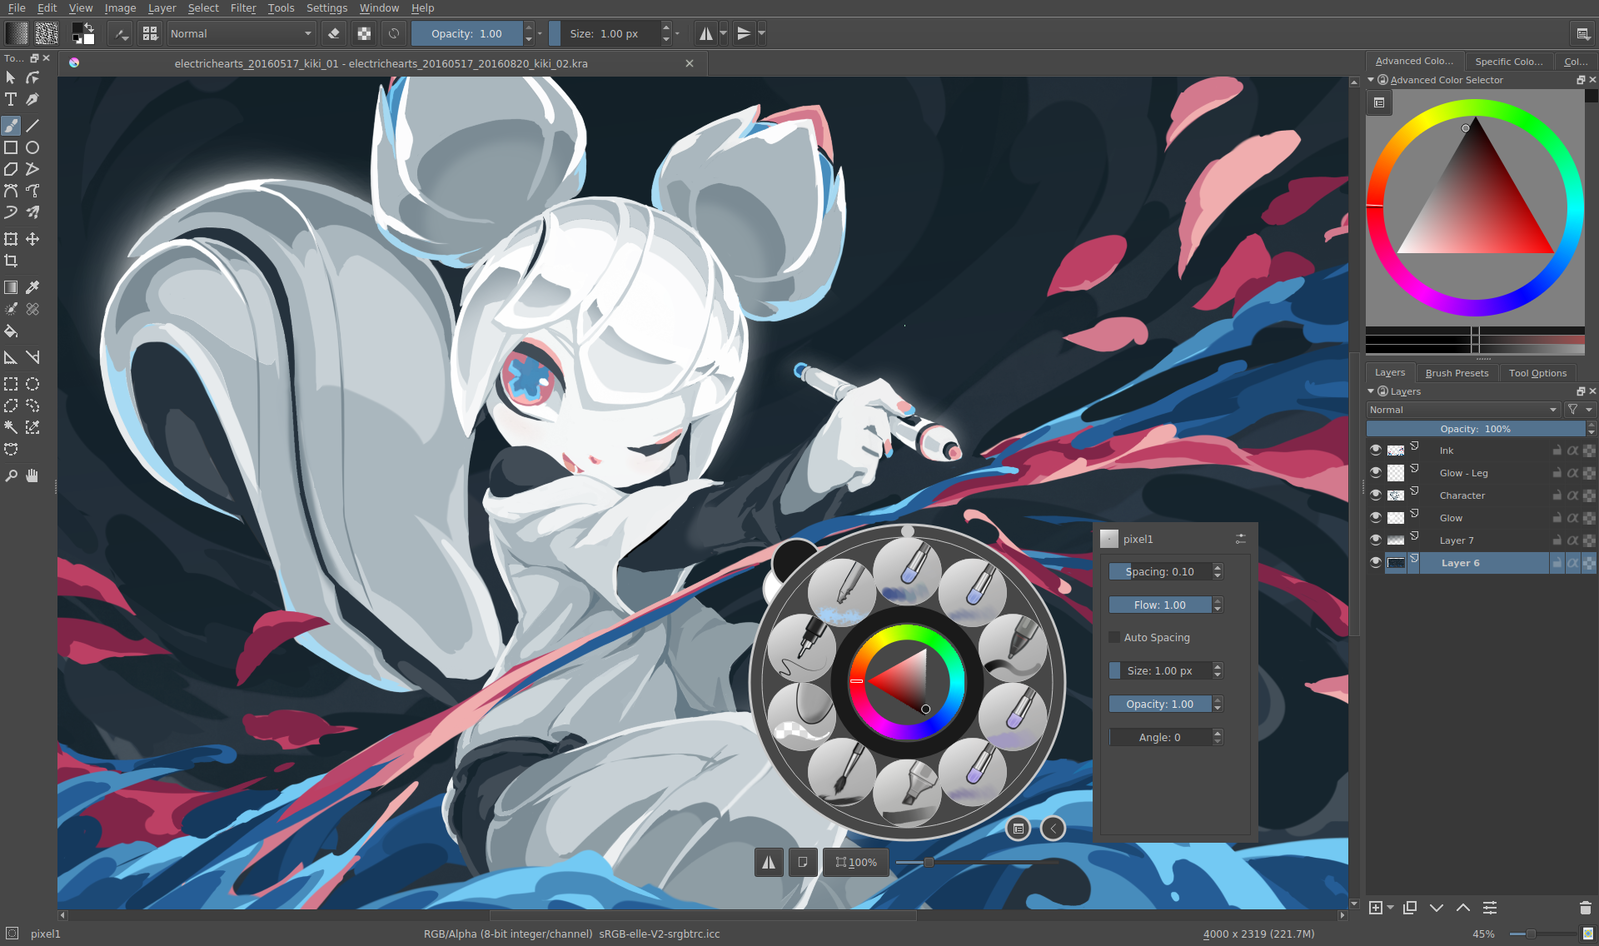 Krita Is A Professional Free And Open Source Painting Program It